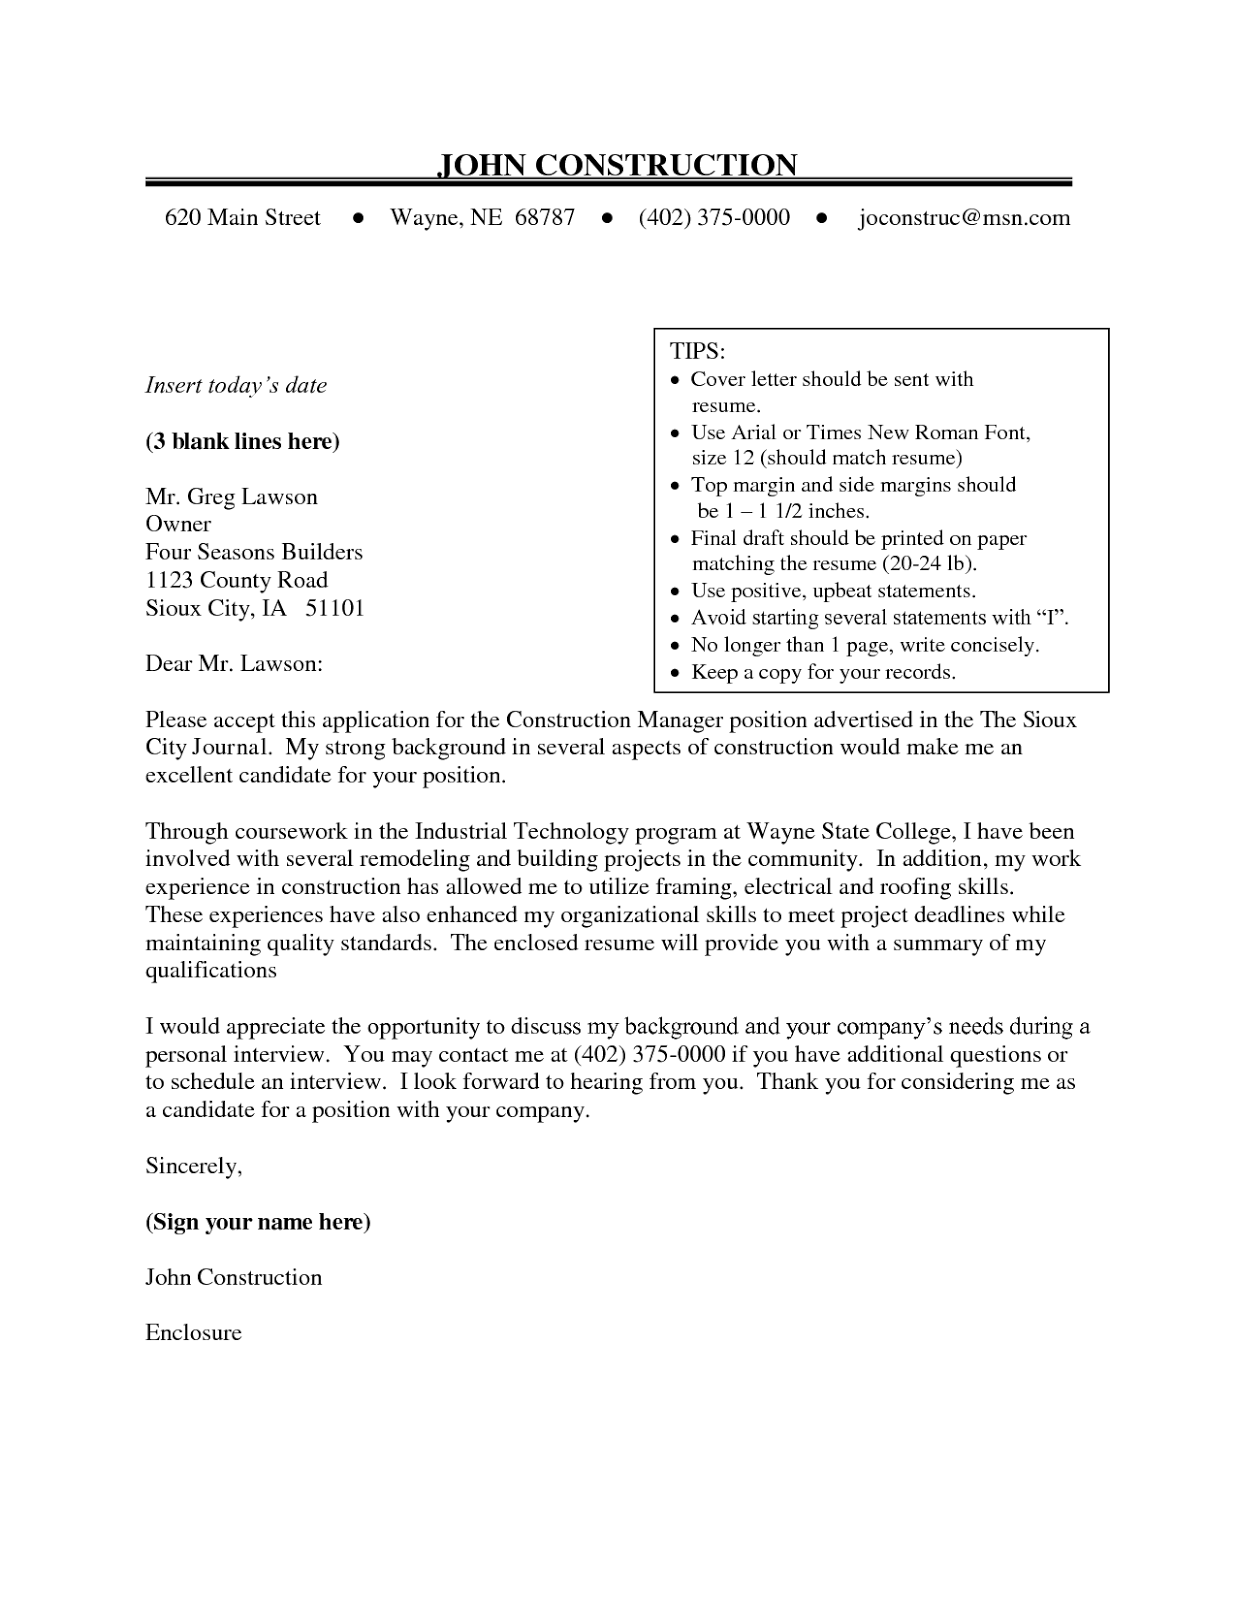 email resume sample resume cv cover letter resume. Resume Example. Resume CV Cover Letter